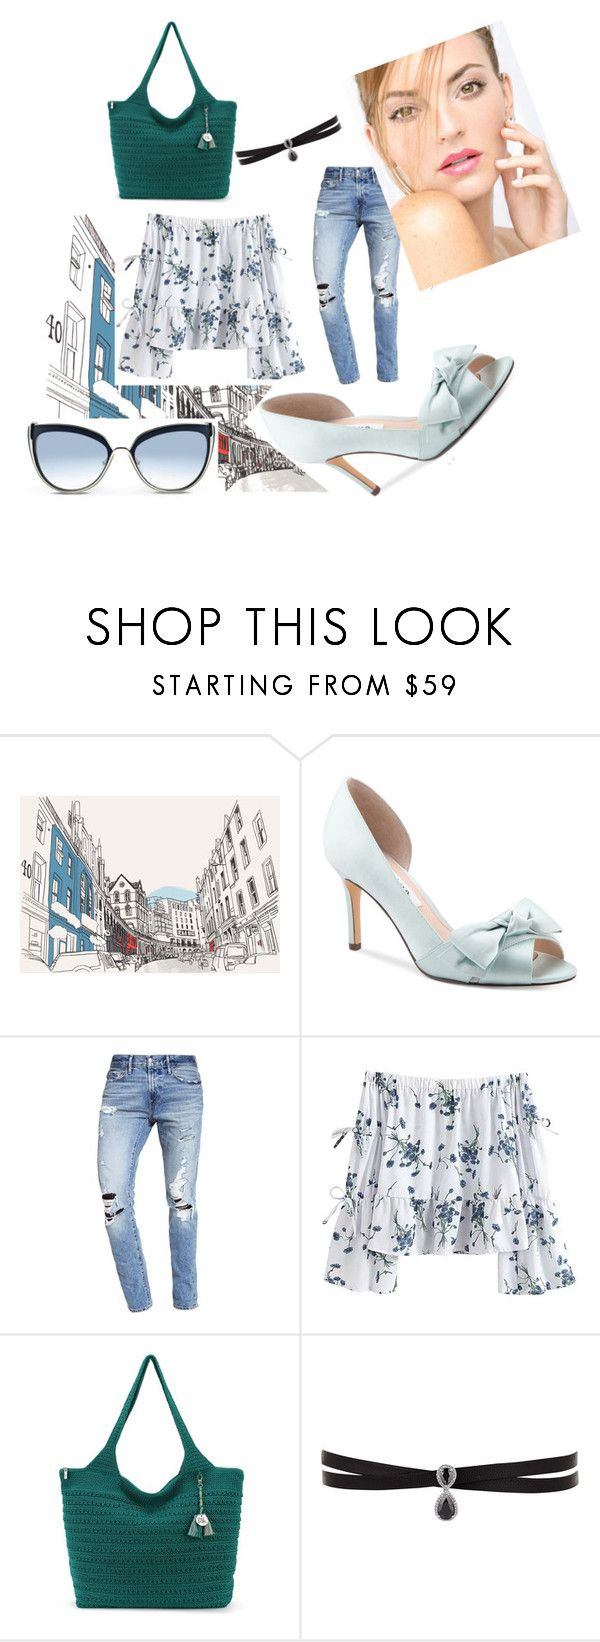 """""""Style"""" by beereem ❤ liked on Polyvore featuring Nina, Abercrombie & Fitch, Fallon, Karl Lagerfeld, chic and women"""